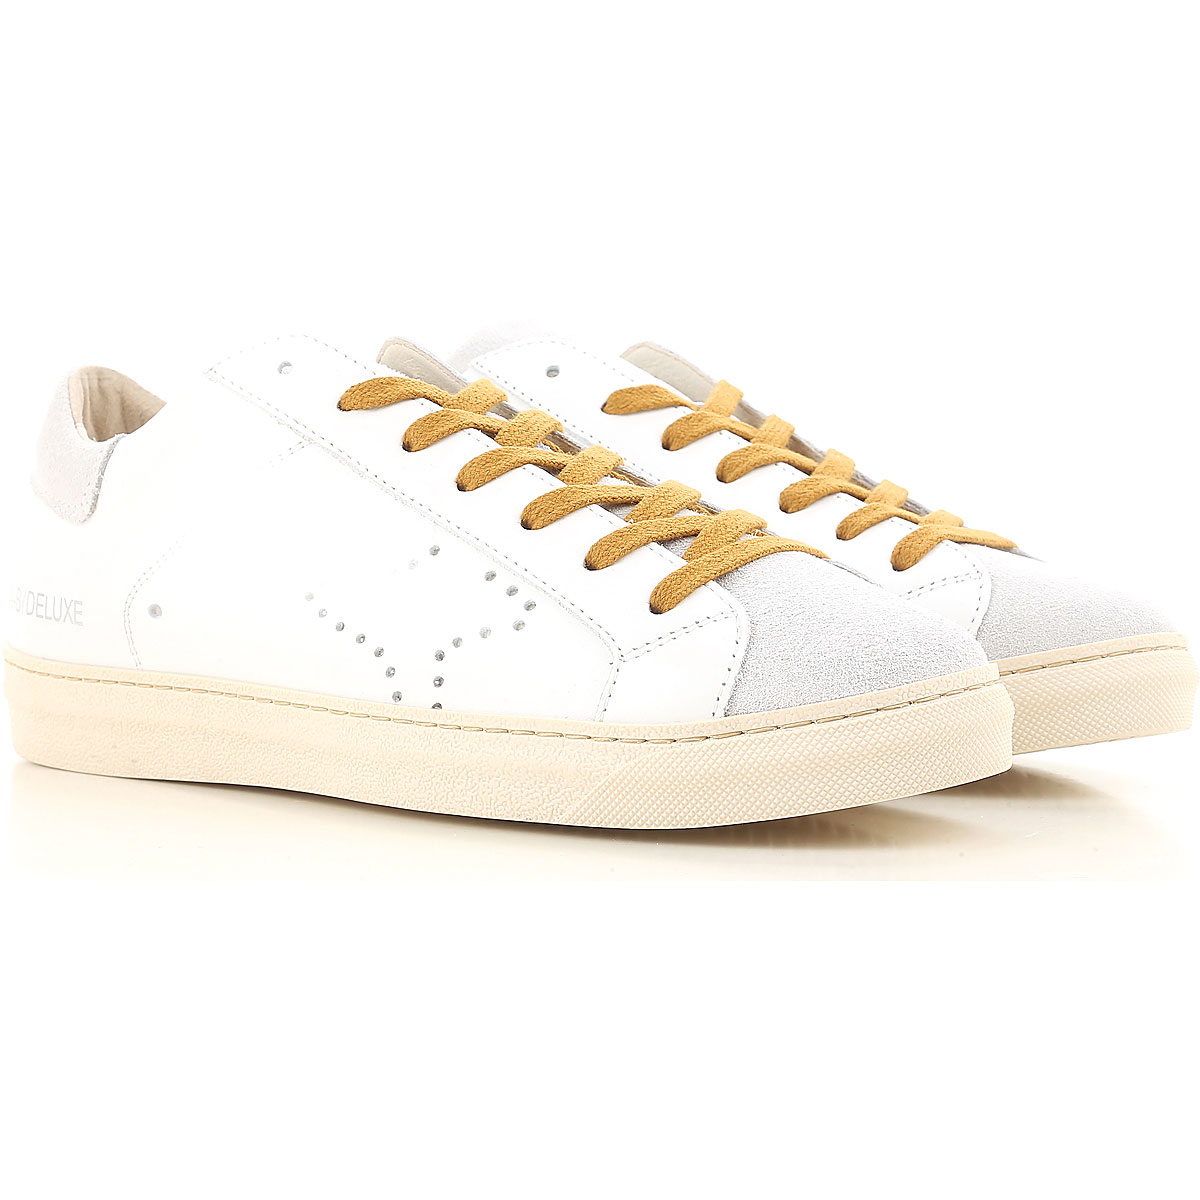 Image of Ama Brand Sneakers for Men On Sale, White, Leather, 2017, EUR 40 - UK 6 - USA 7 EUR 42 - UK 8 - USA 8.5 EUR 44 - UK 9.5 - USA 10 EUR 41 - US 8 - UK 7